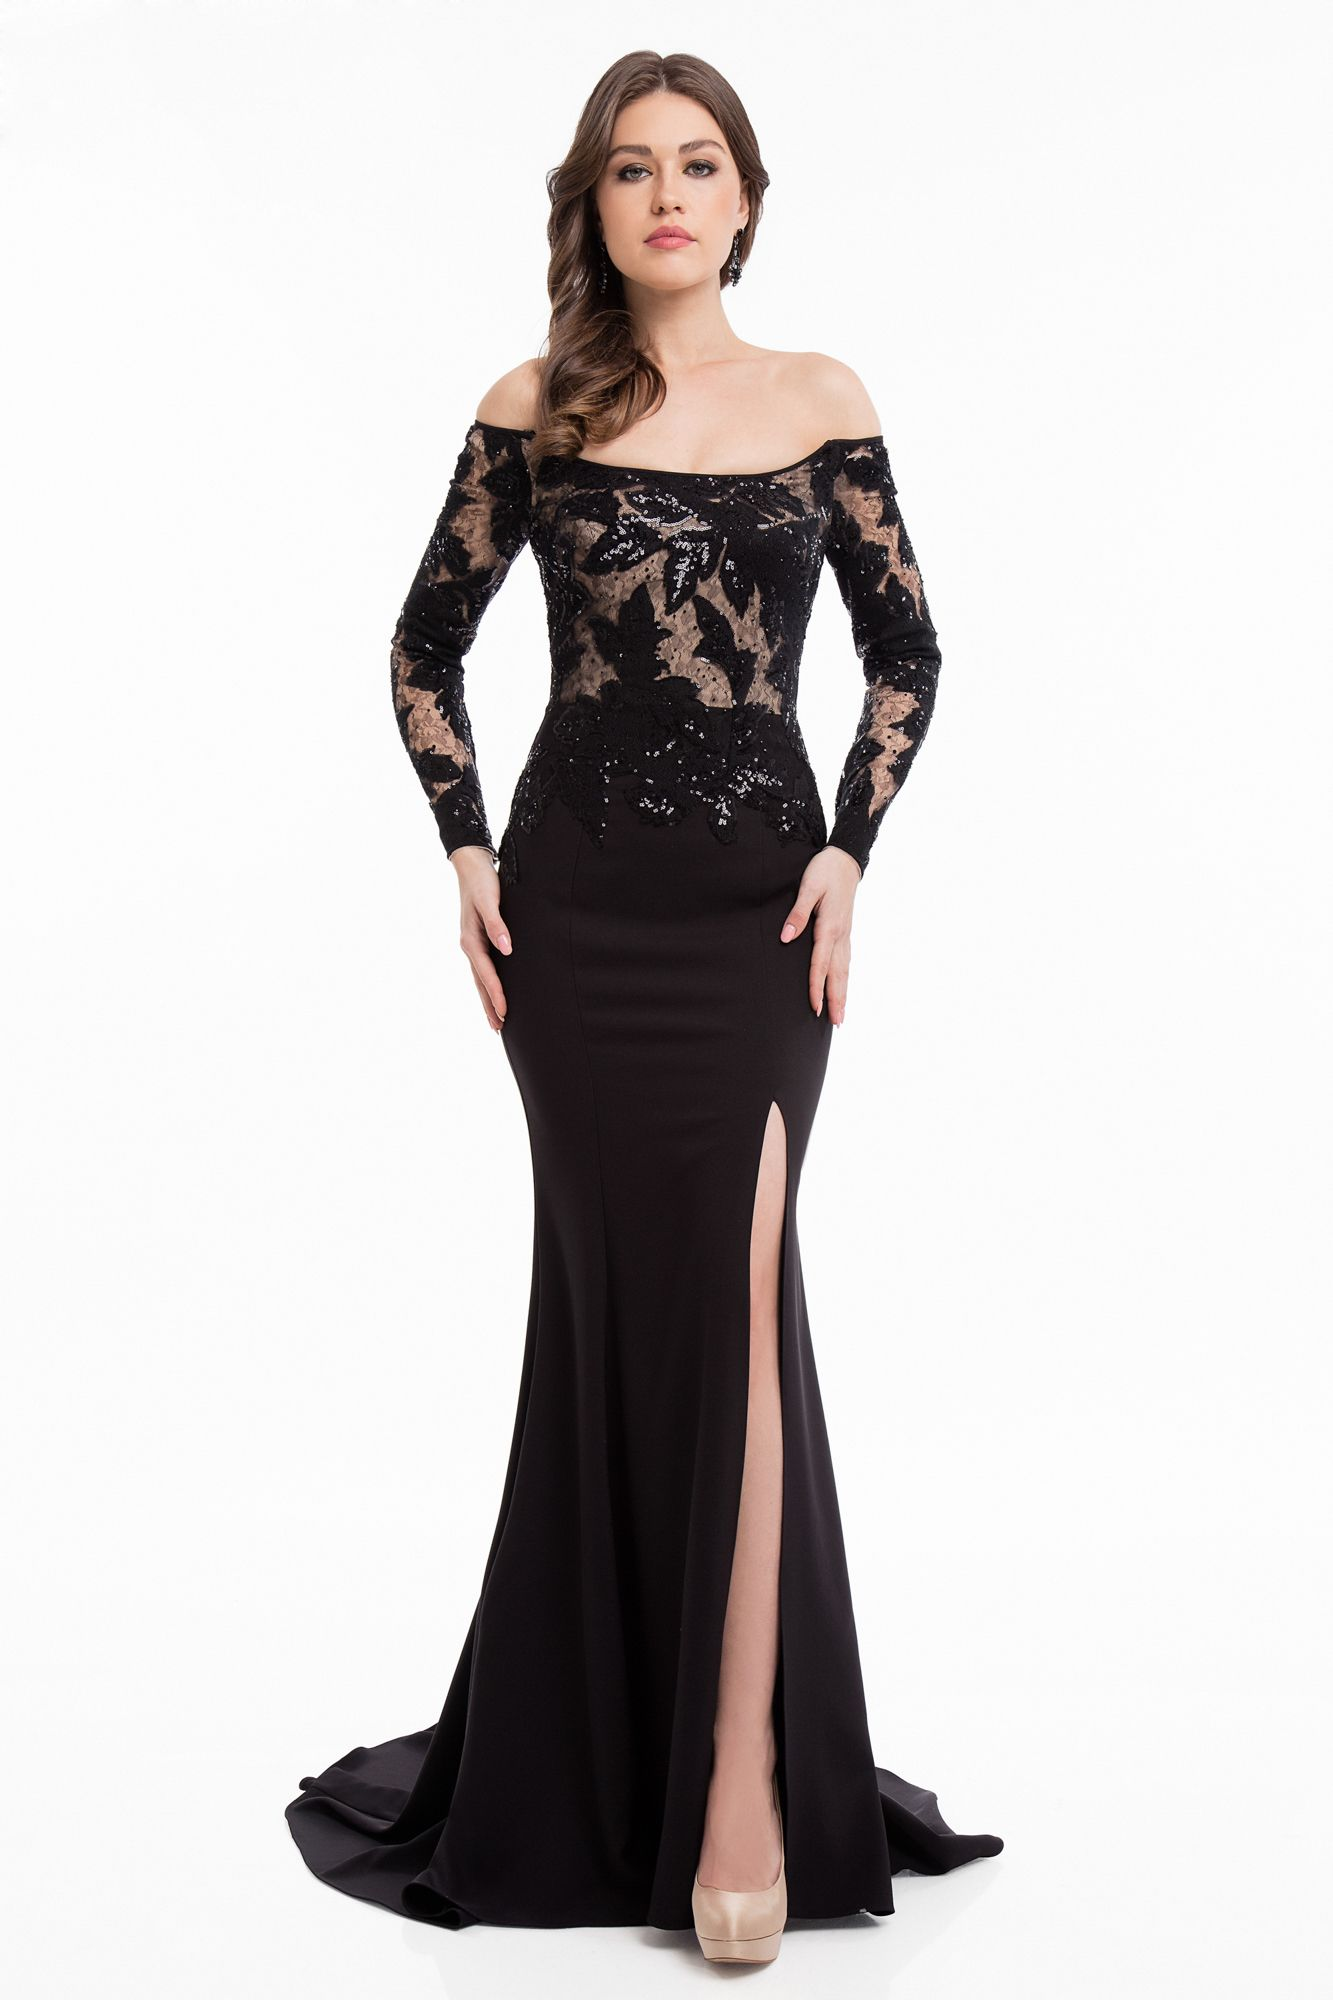 732a9bd8f369688 Radiate Hollywood glamour in the Long Sleeve Embellished Lace and Crepe  Evening Gown by Terani Couture.